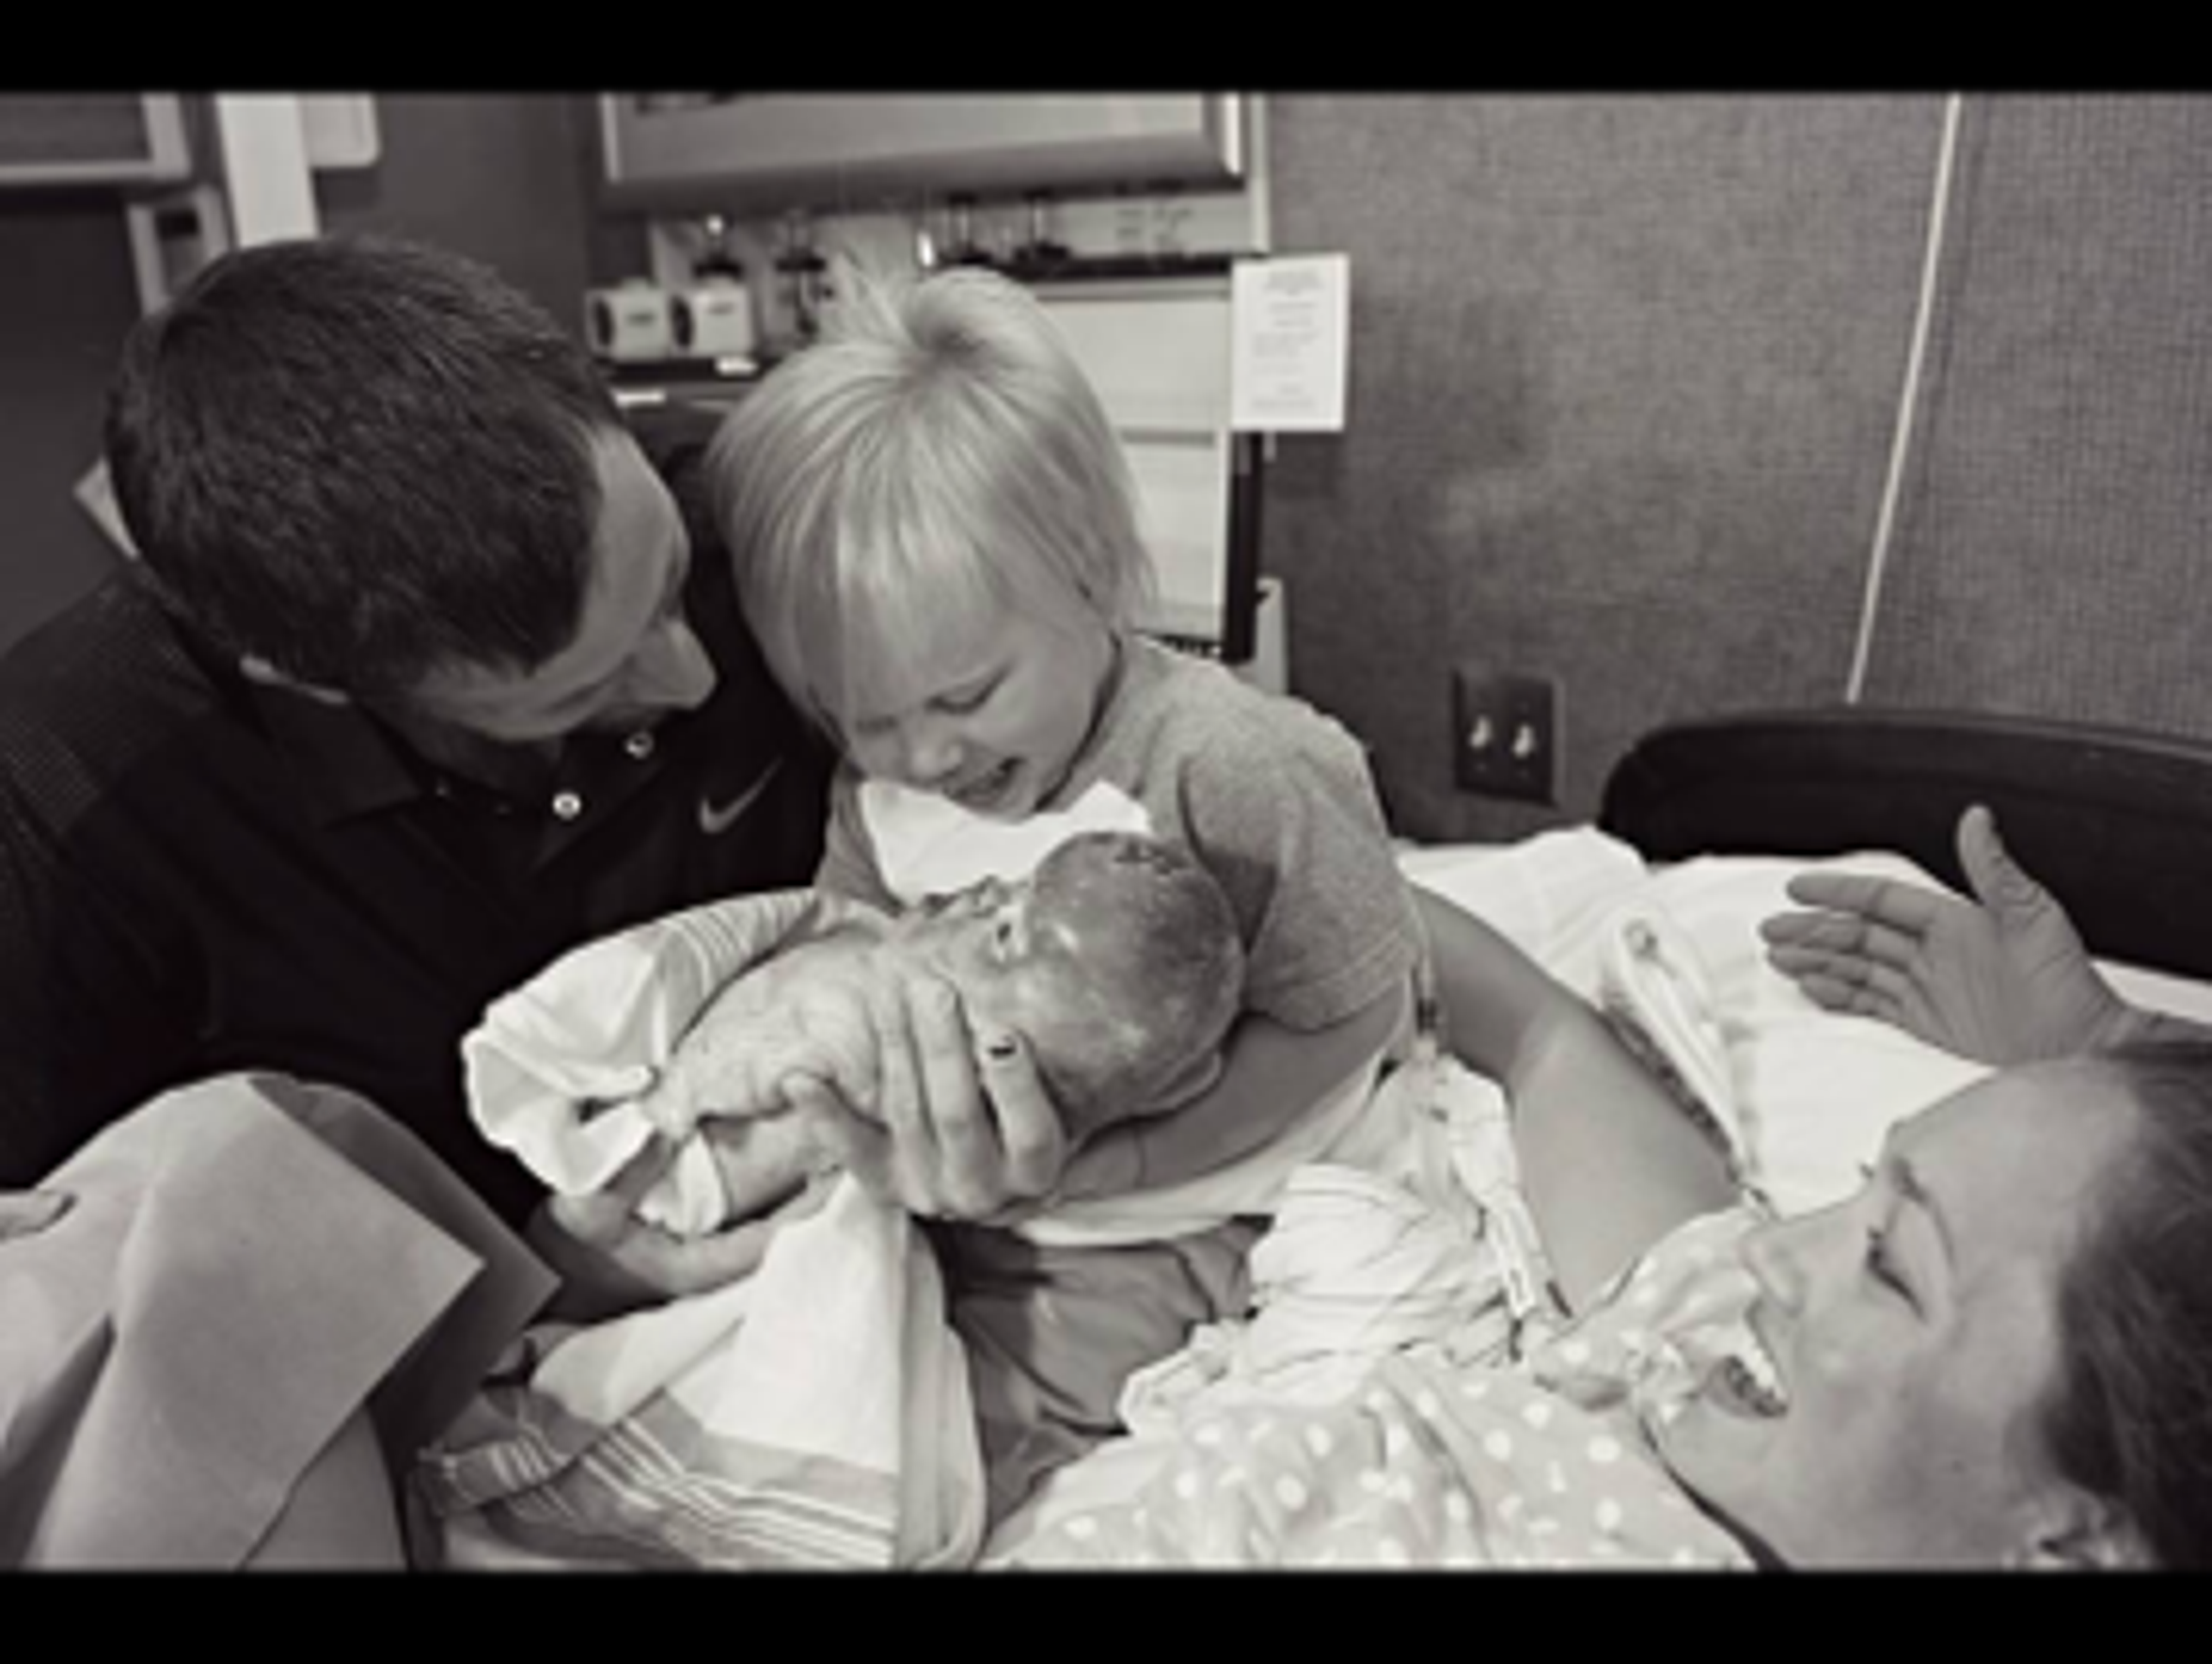 Talia and Josh introduce their son, Kye, to his baby